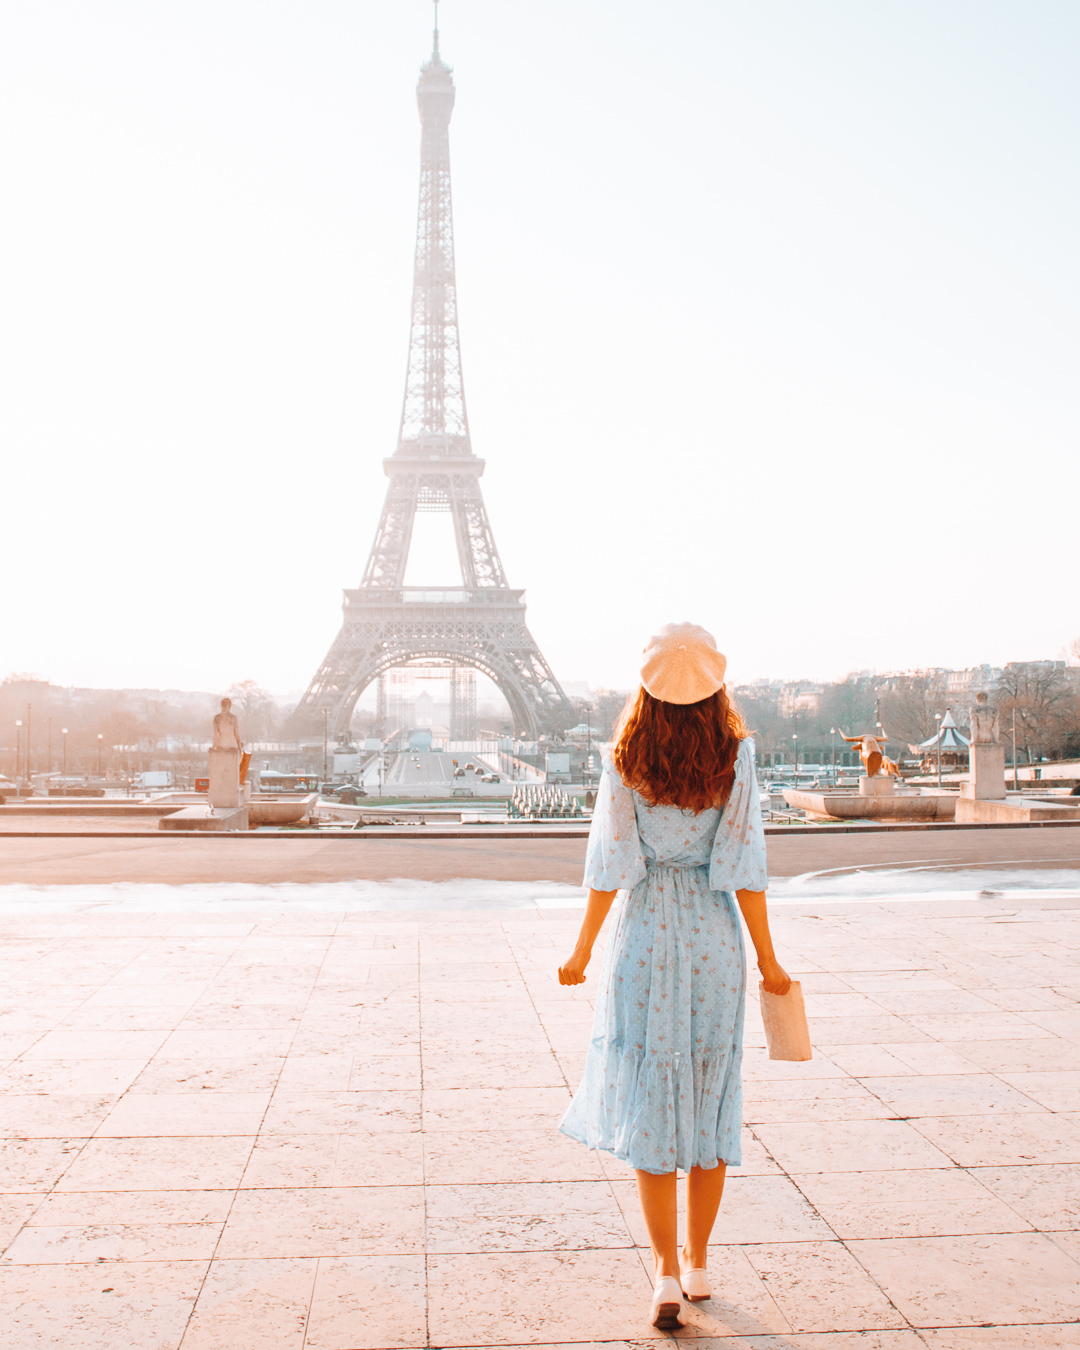 View of the Eiffel Tower at Trocadéro in Paris